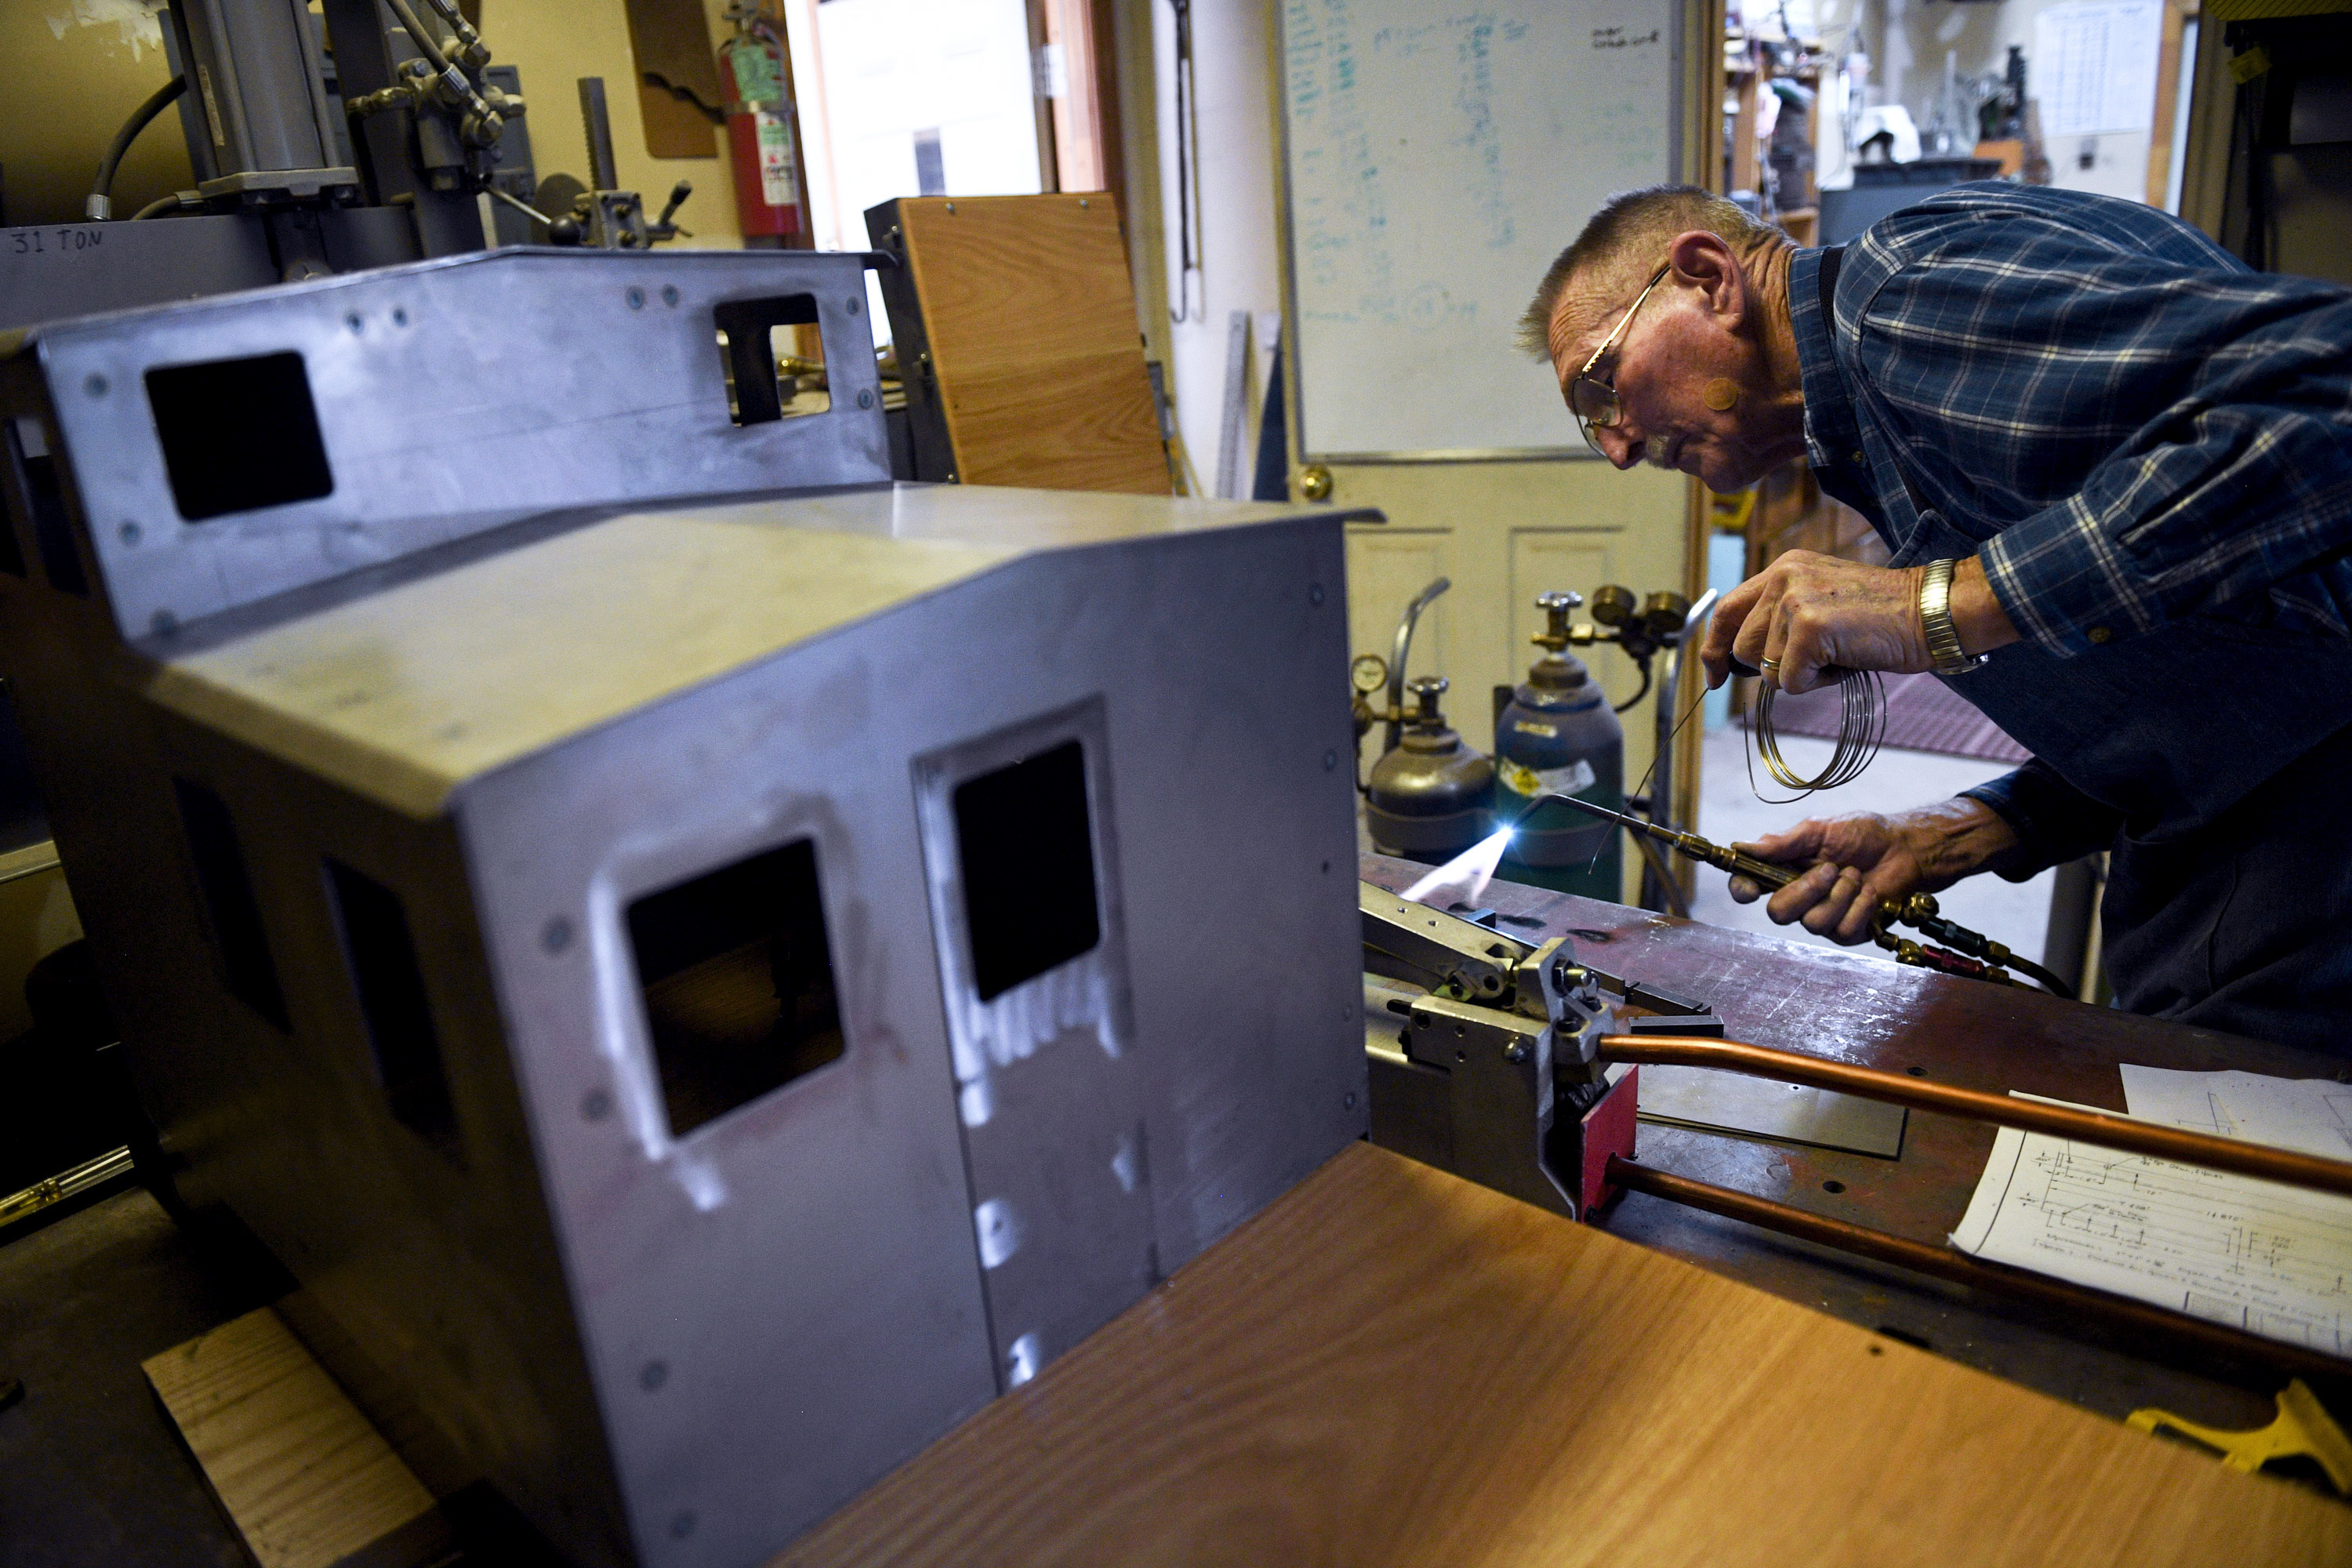 ADVANCE FOR USE WITH WEEKEND EDITIONS JULY 7-8, 2018 AND THEREAFTER In this Tuesday, June 19, 2018 photo, Jim Smeltzer welds a miniature ladder which will eventually attach to the back of the caboose in his workshop at his home in Highland, Utah. Since 2004, the Smeltzers' land surrounding their home has been a model railyard.  (Isaac Hale/The Daily Herald via AP)